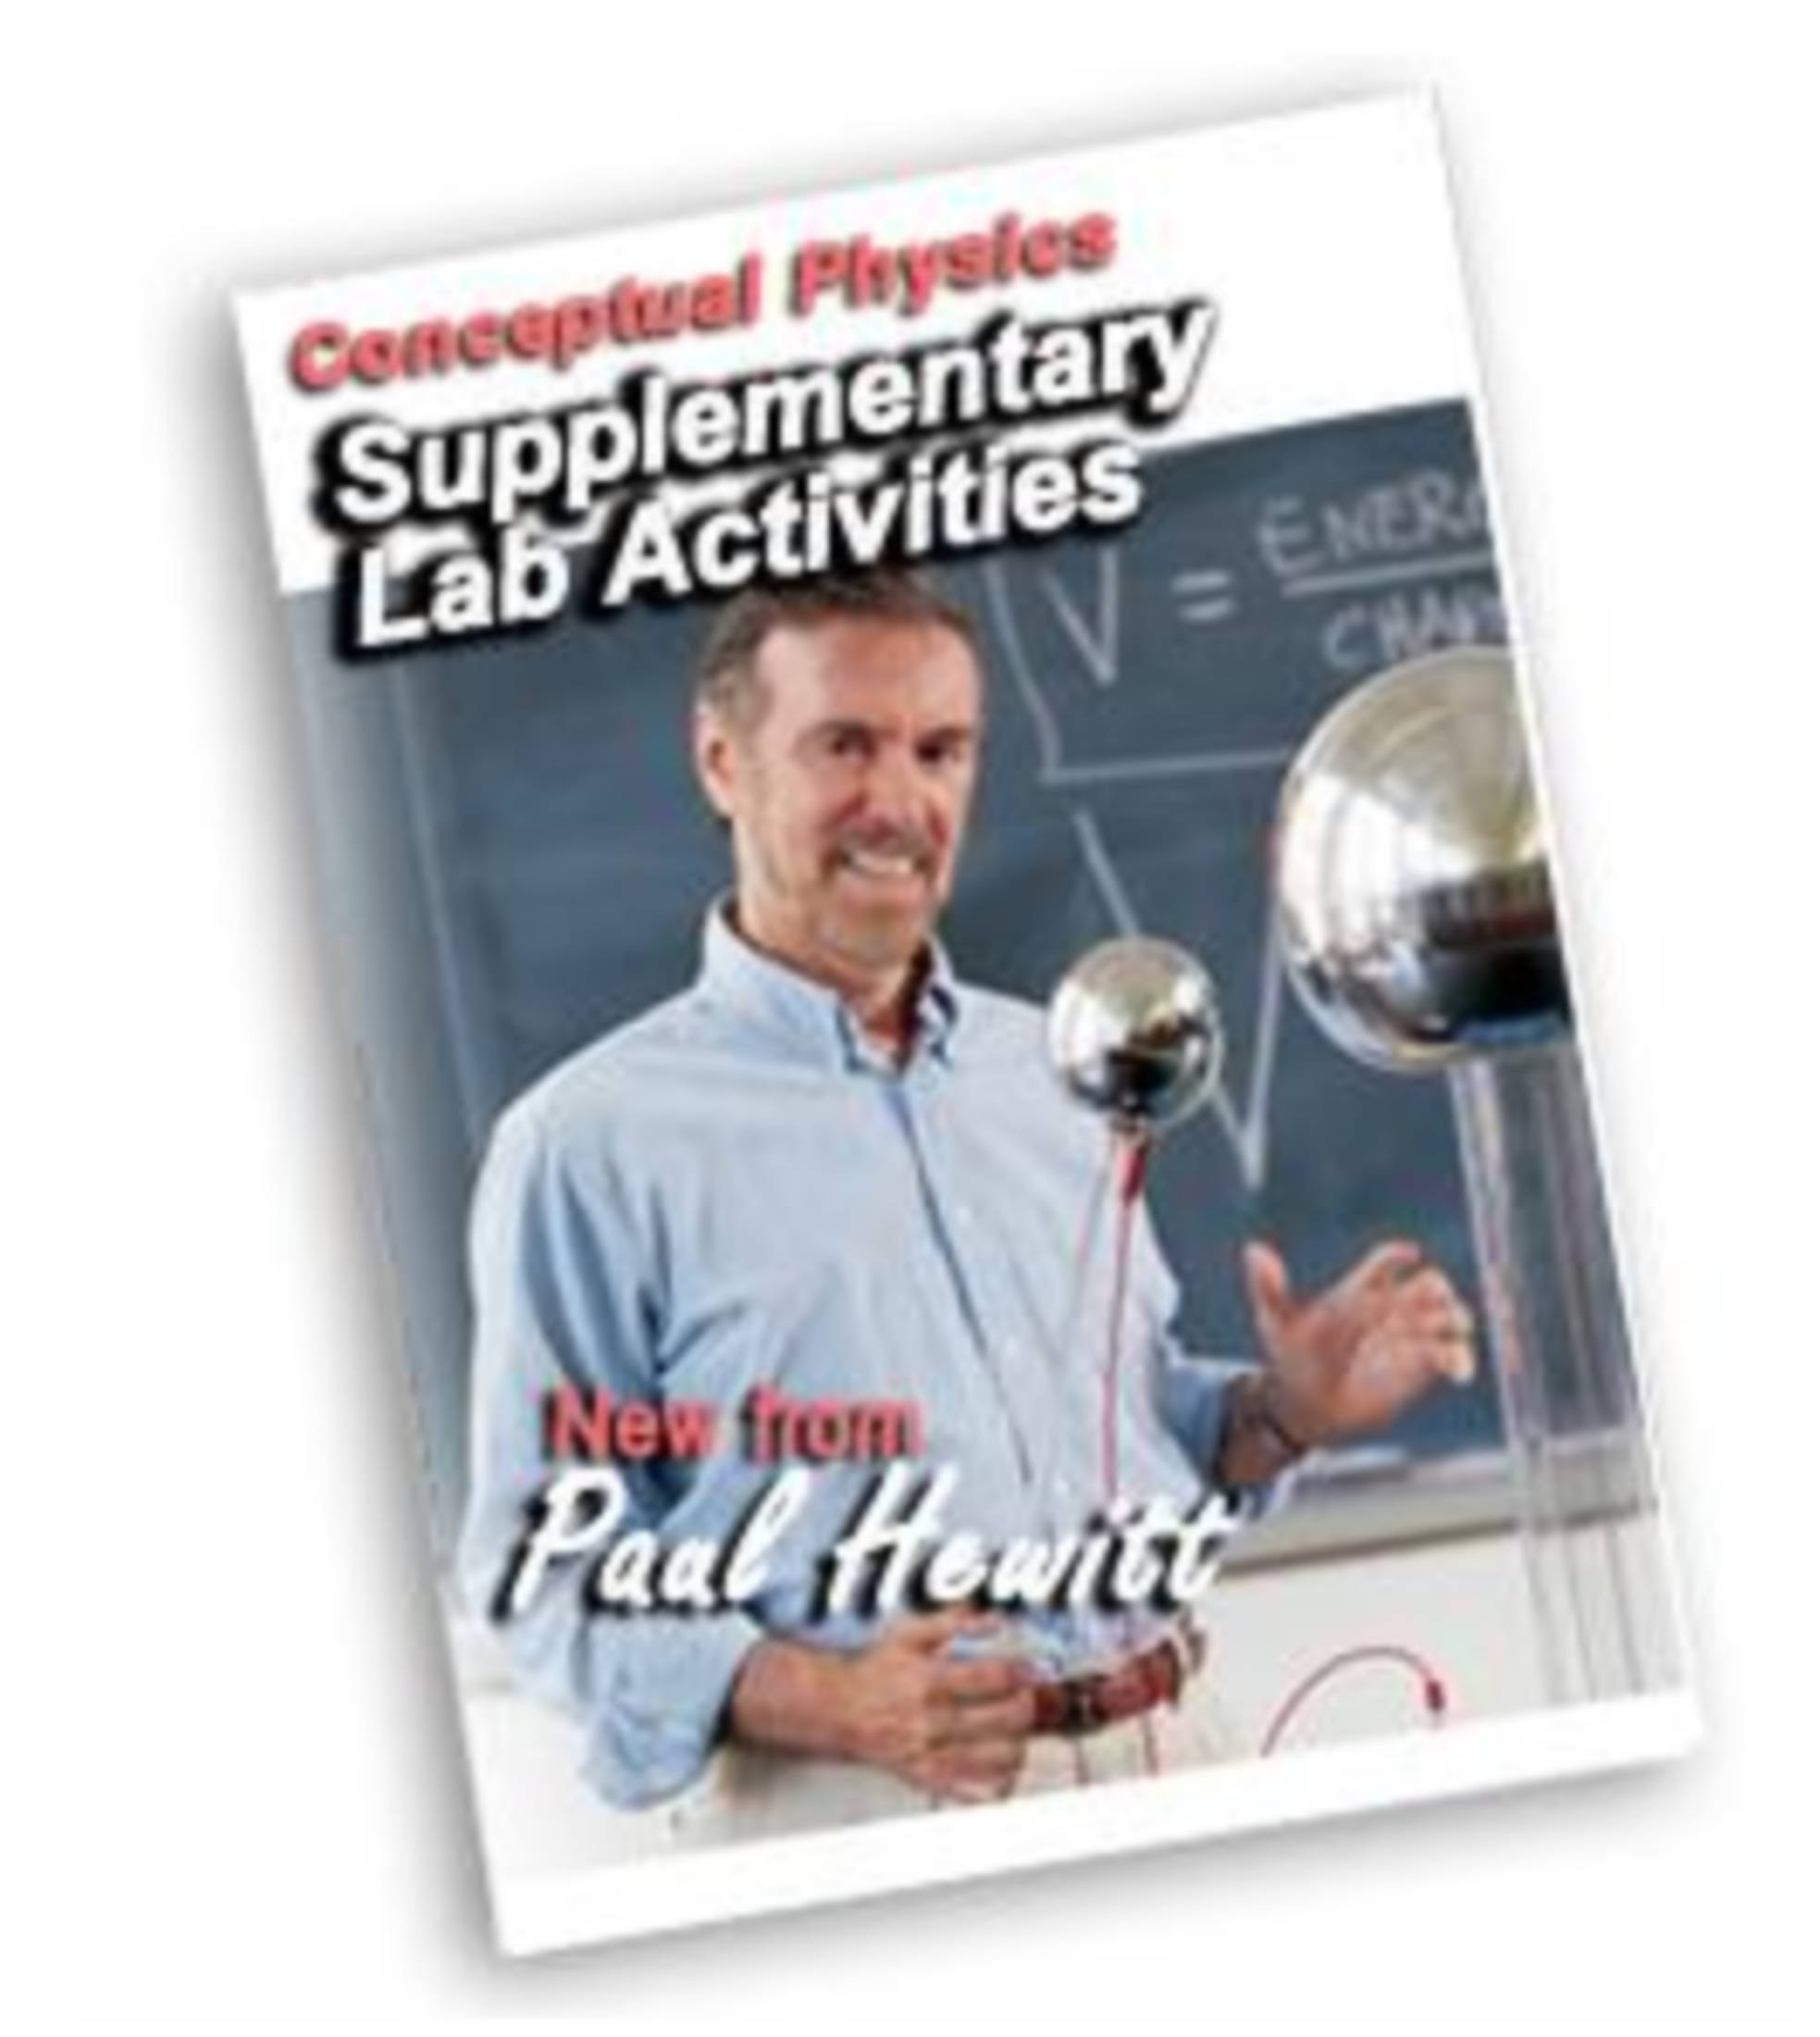 Conceptual Physics Supplementary Lab Activities by Paul Hewitt